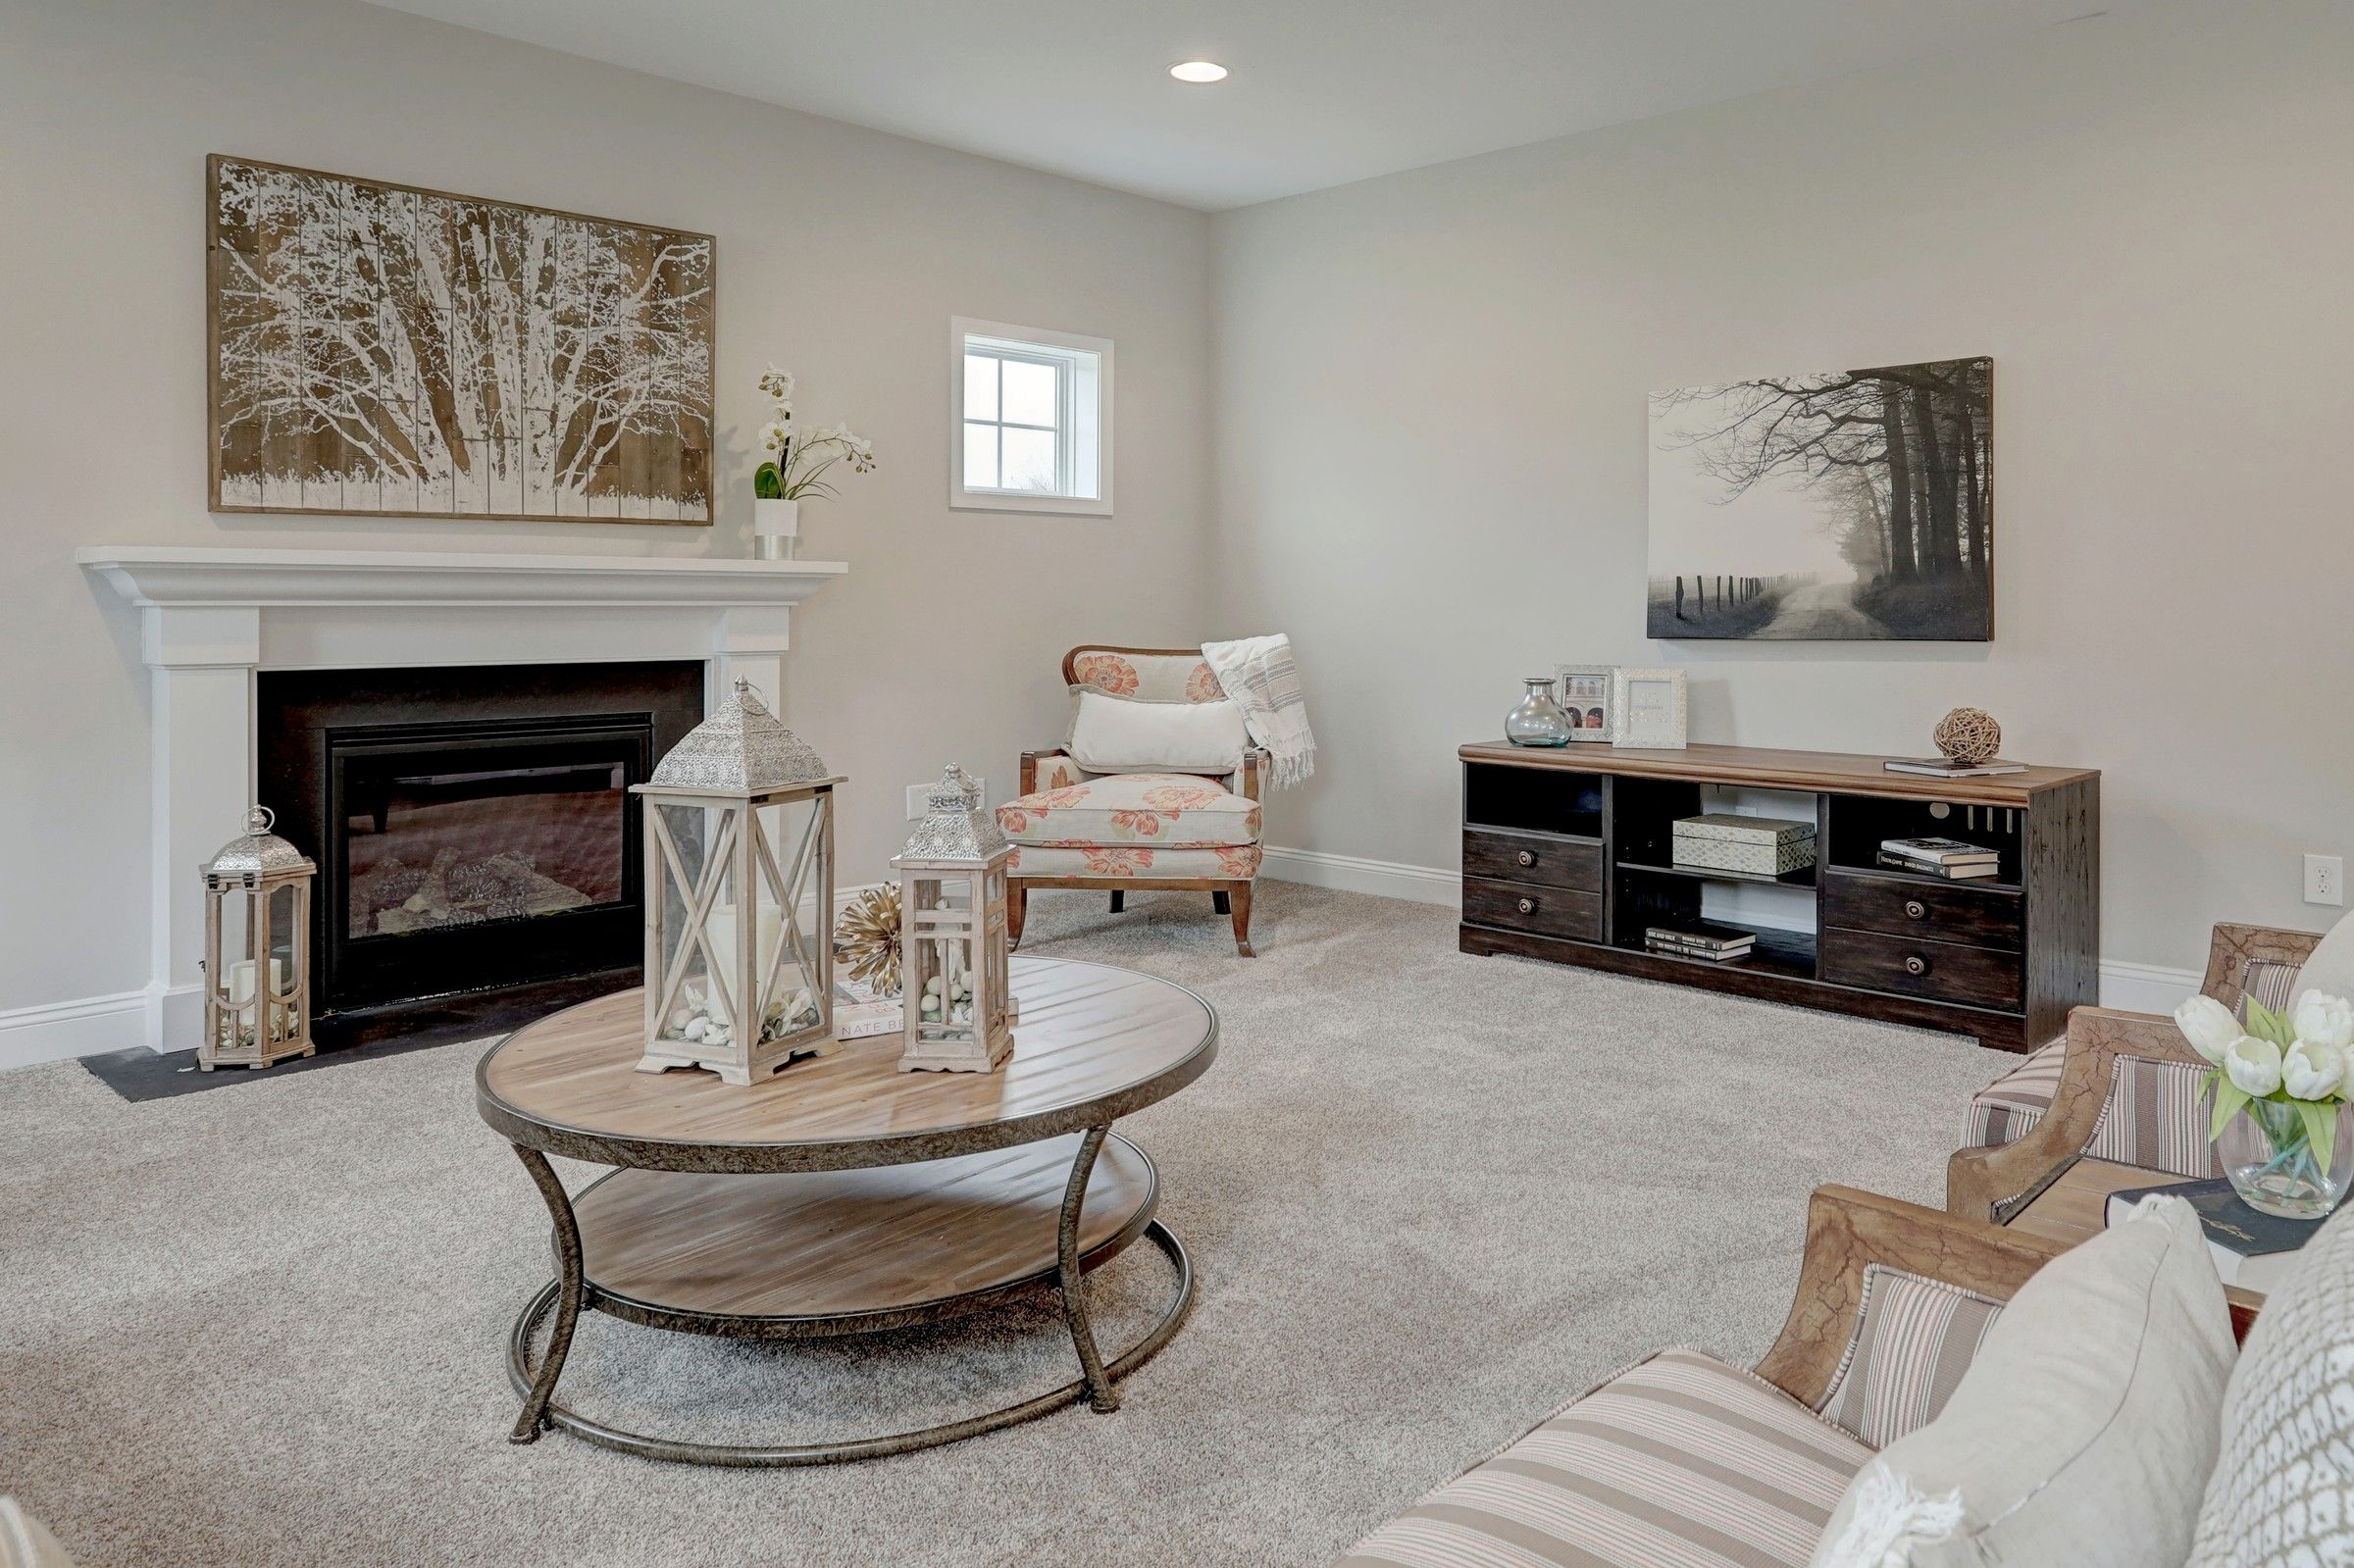 Living Area featured in the Oxford Farmhouse By Keystone Custom Homes in York, PA